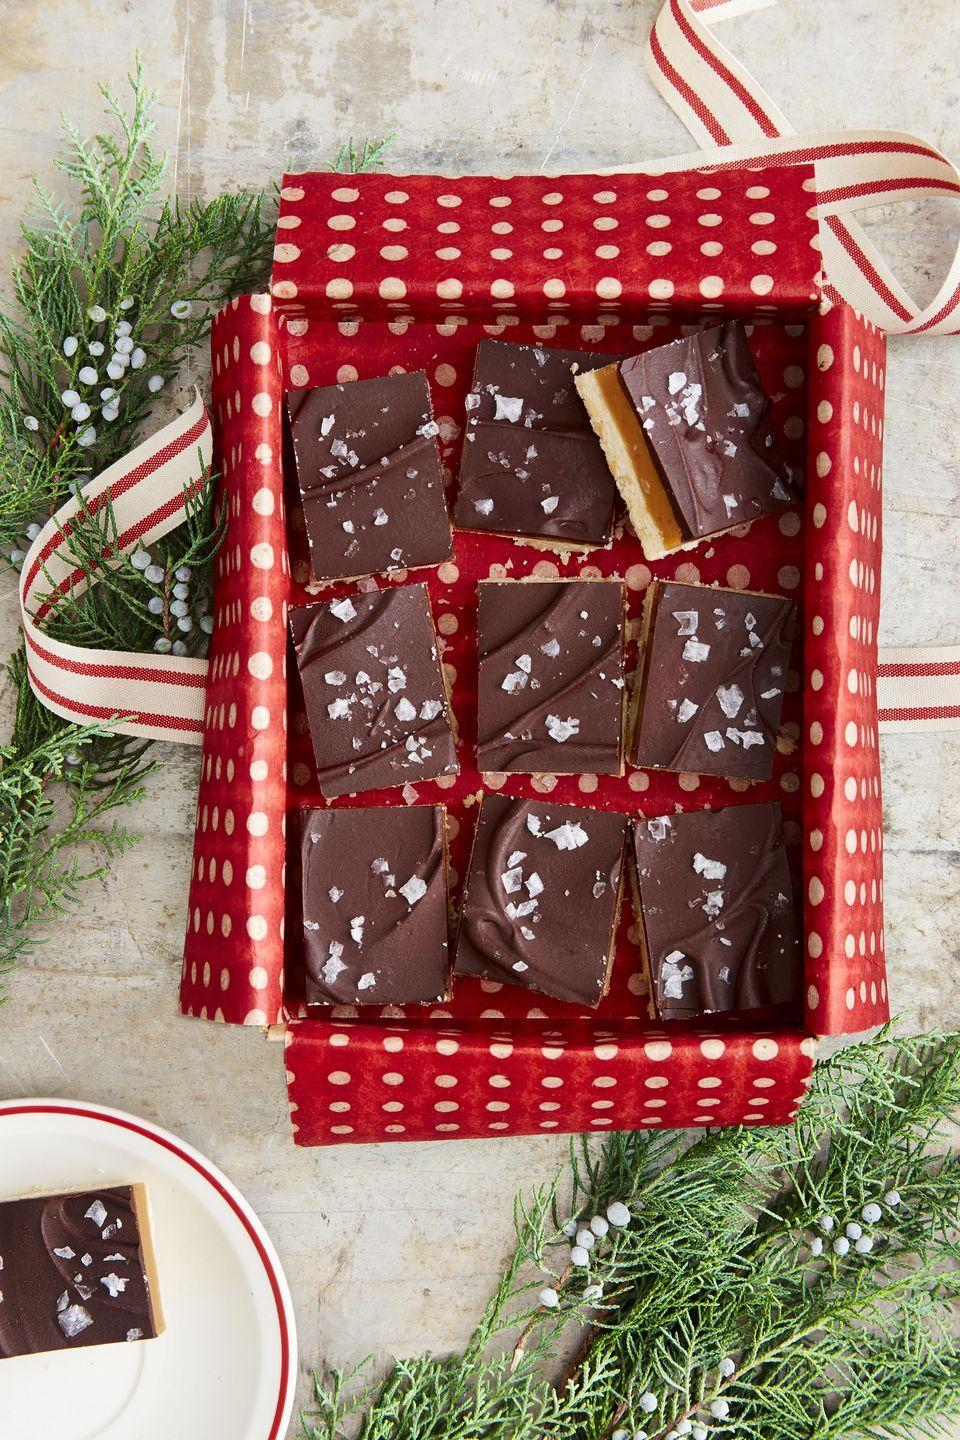 """<p>You'll make 'em feel like a million bucks when you gift these rich and delicious 3-layer bars. <strong><a href=""""https://www.countryliving.com/food-drinks/a34331924/millionaires-shortbread-recipe/"""" rel=""""nofollow noopener"""" target=""""_blank"""" data-ylk=""""slk:Get the recipe"""" class=""""link rapid-noclick-resp""""><br><br>Get the recipe</a>.</strong><br><br><a class=""""link rapid-noclick-resp"""" href=""""https://www.amazon.com/USA-Pan-Bakeware-Rectangular-Aluminized/dp/B0029JOC6I/ref=sr_1_2_sspa?tag=syn-yahoo-20&ascsubtag=%5Bartid%7C10050.g.645%5Bsrc%7Cyahoo-us"""" rel=""""nofollow noopener"""" target=""""_blank"""" data-ylk=""""slk:SHOP BAKING PANS"""">SHOP BAKING PAN<strong>S</strong></a></p>"""